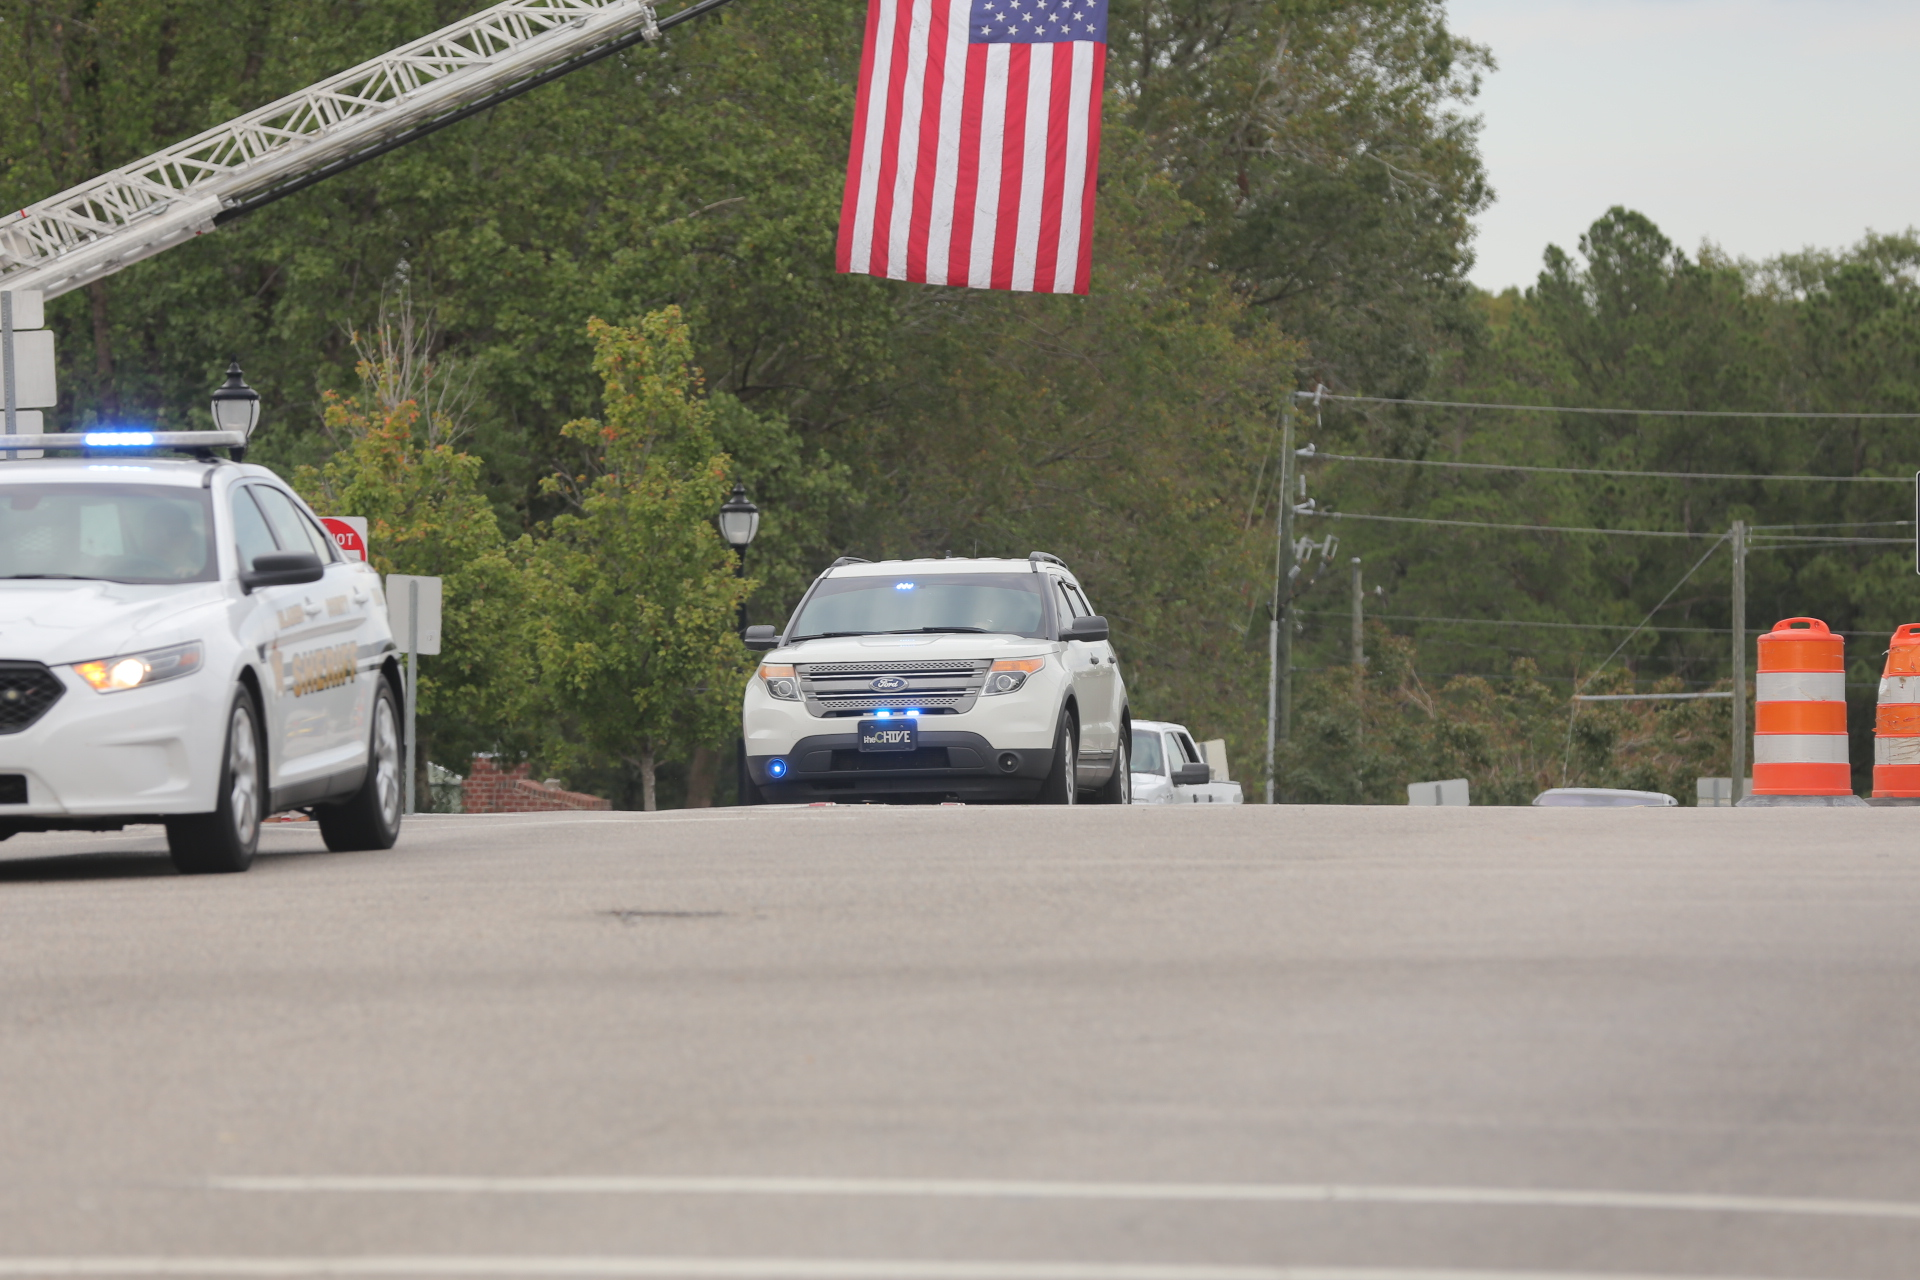 Procession continues from in Elizabethtown and Bladenboro extending to Whiteville for North Carolina Highway Patrol, Trooper Kevin Conner photos by Kenneth Armstrong